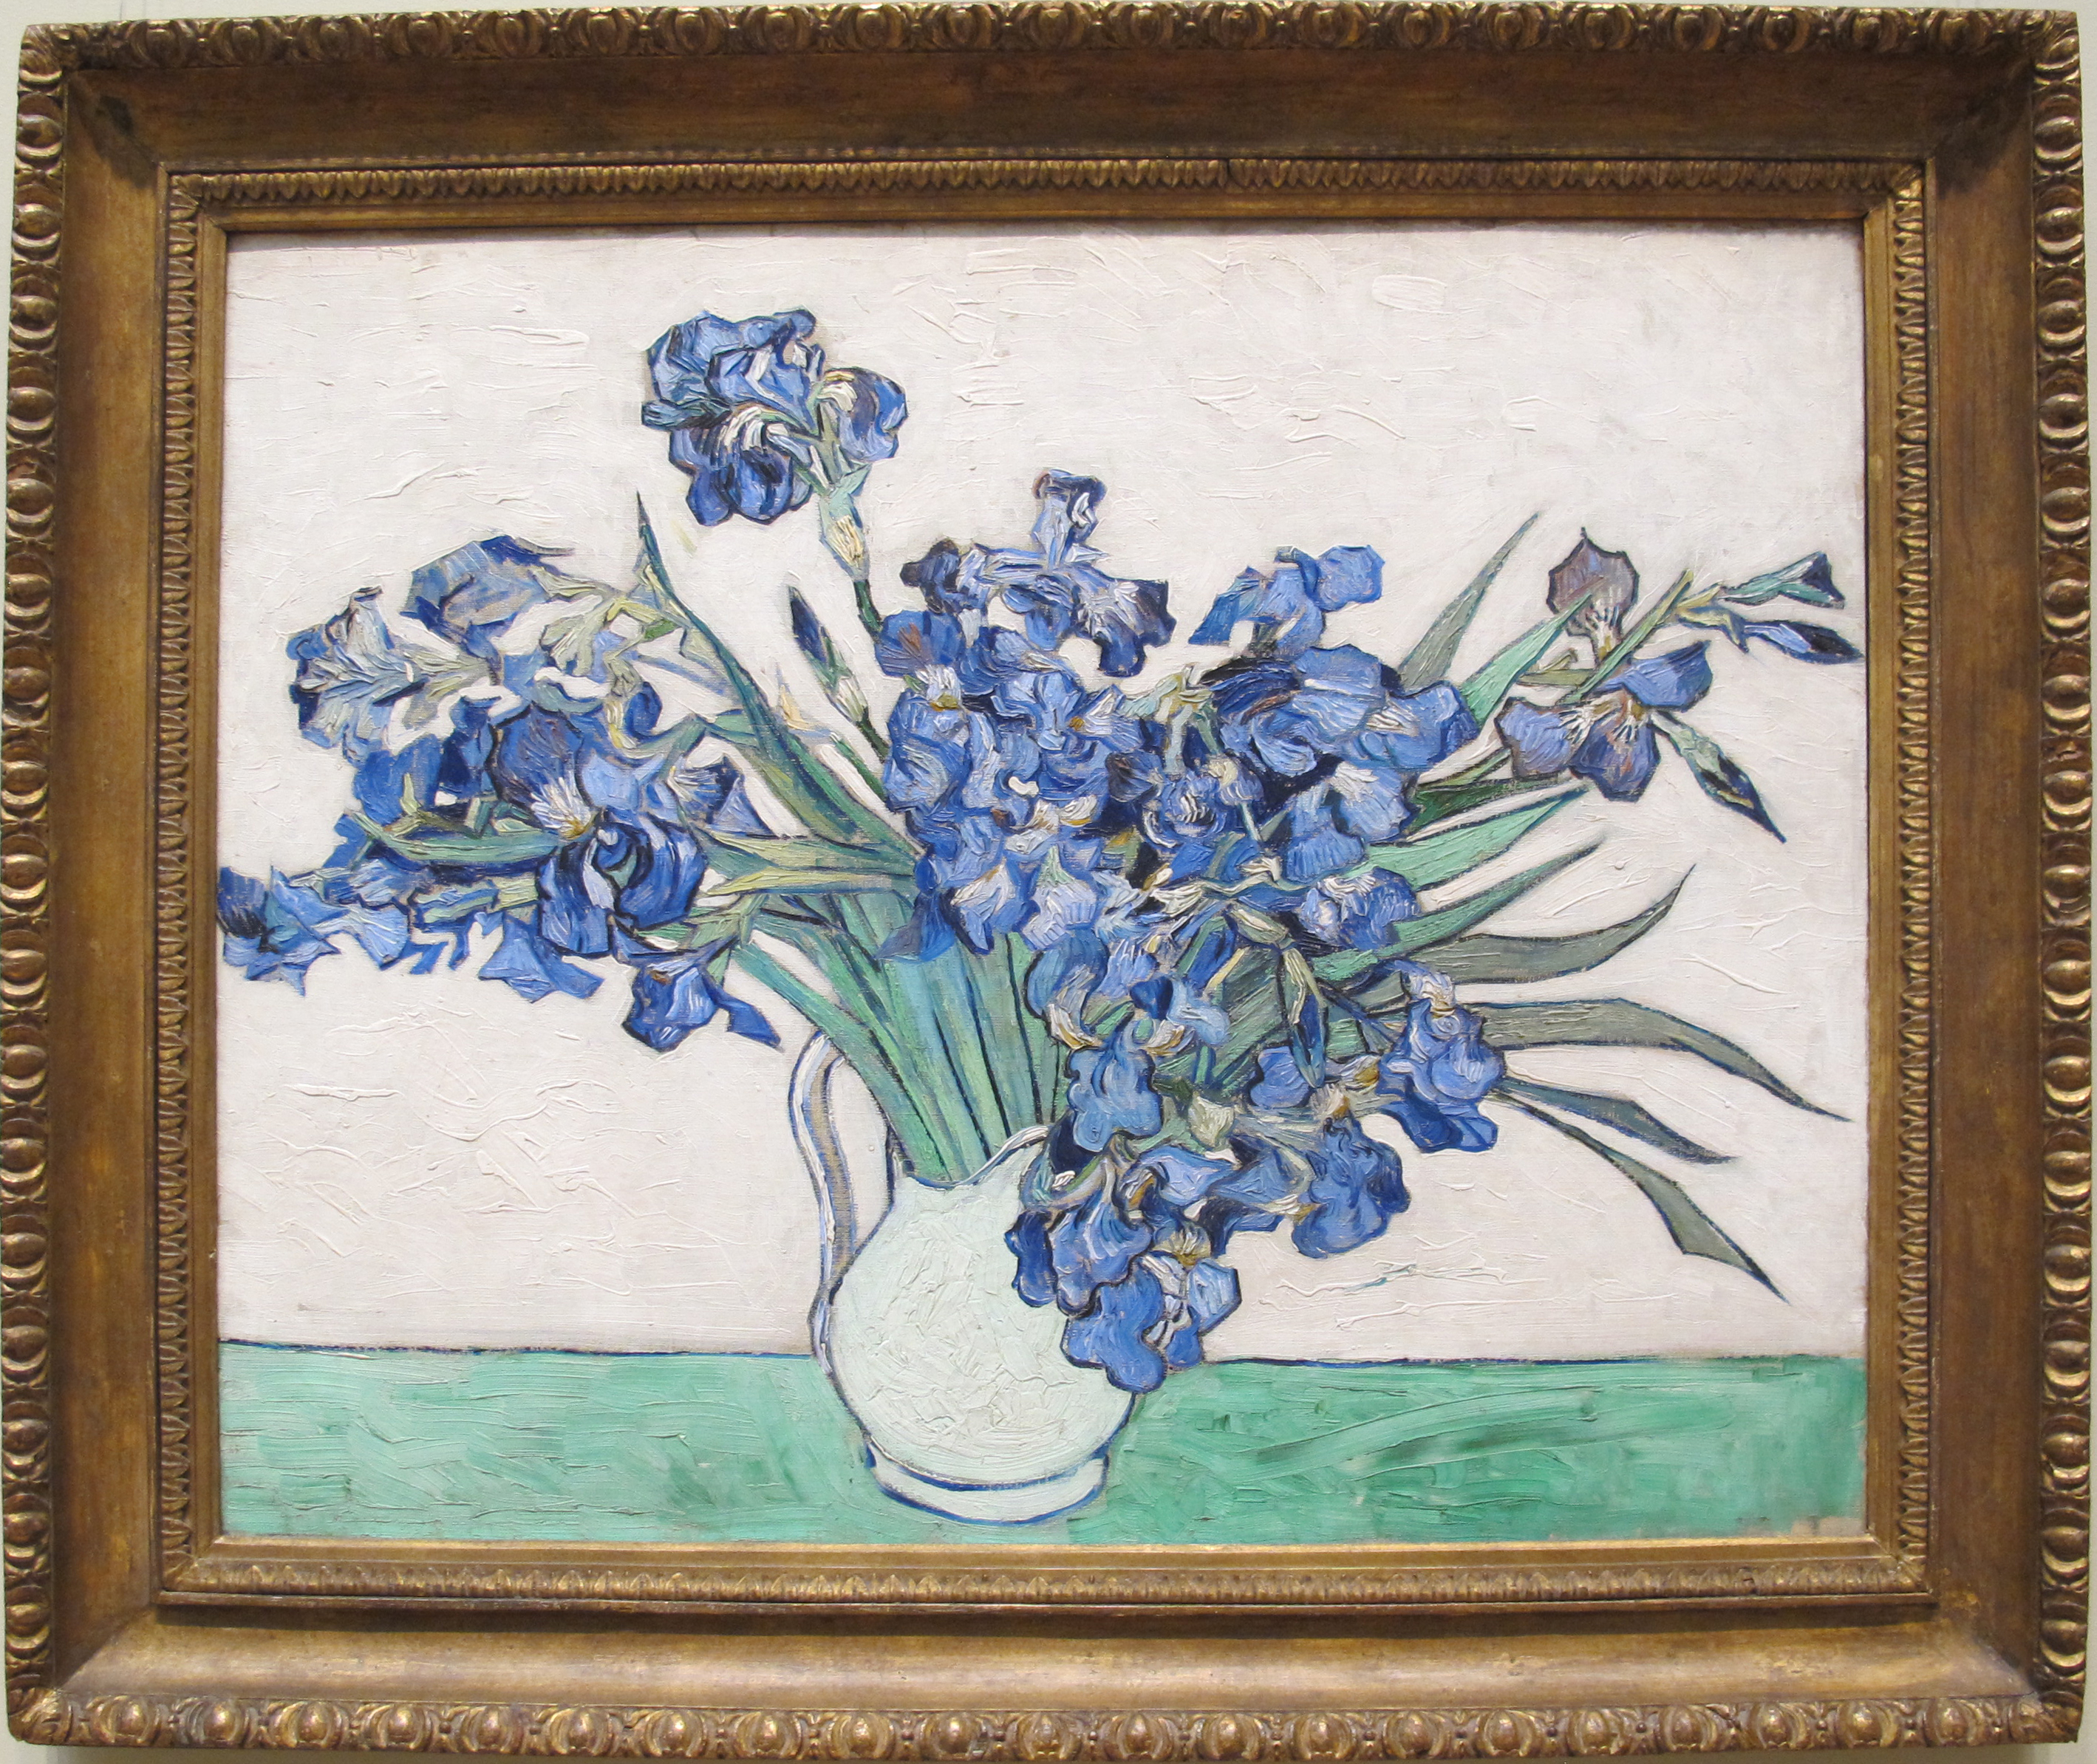 Filevincent van gogh iris 1890g wikimedia commons filevincent van gogh iris 1890g reviewsmspy